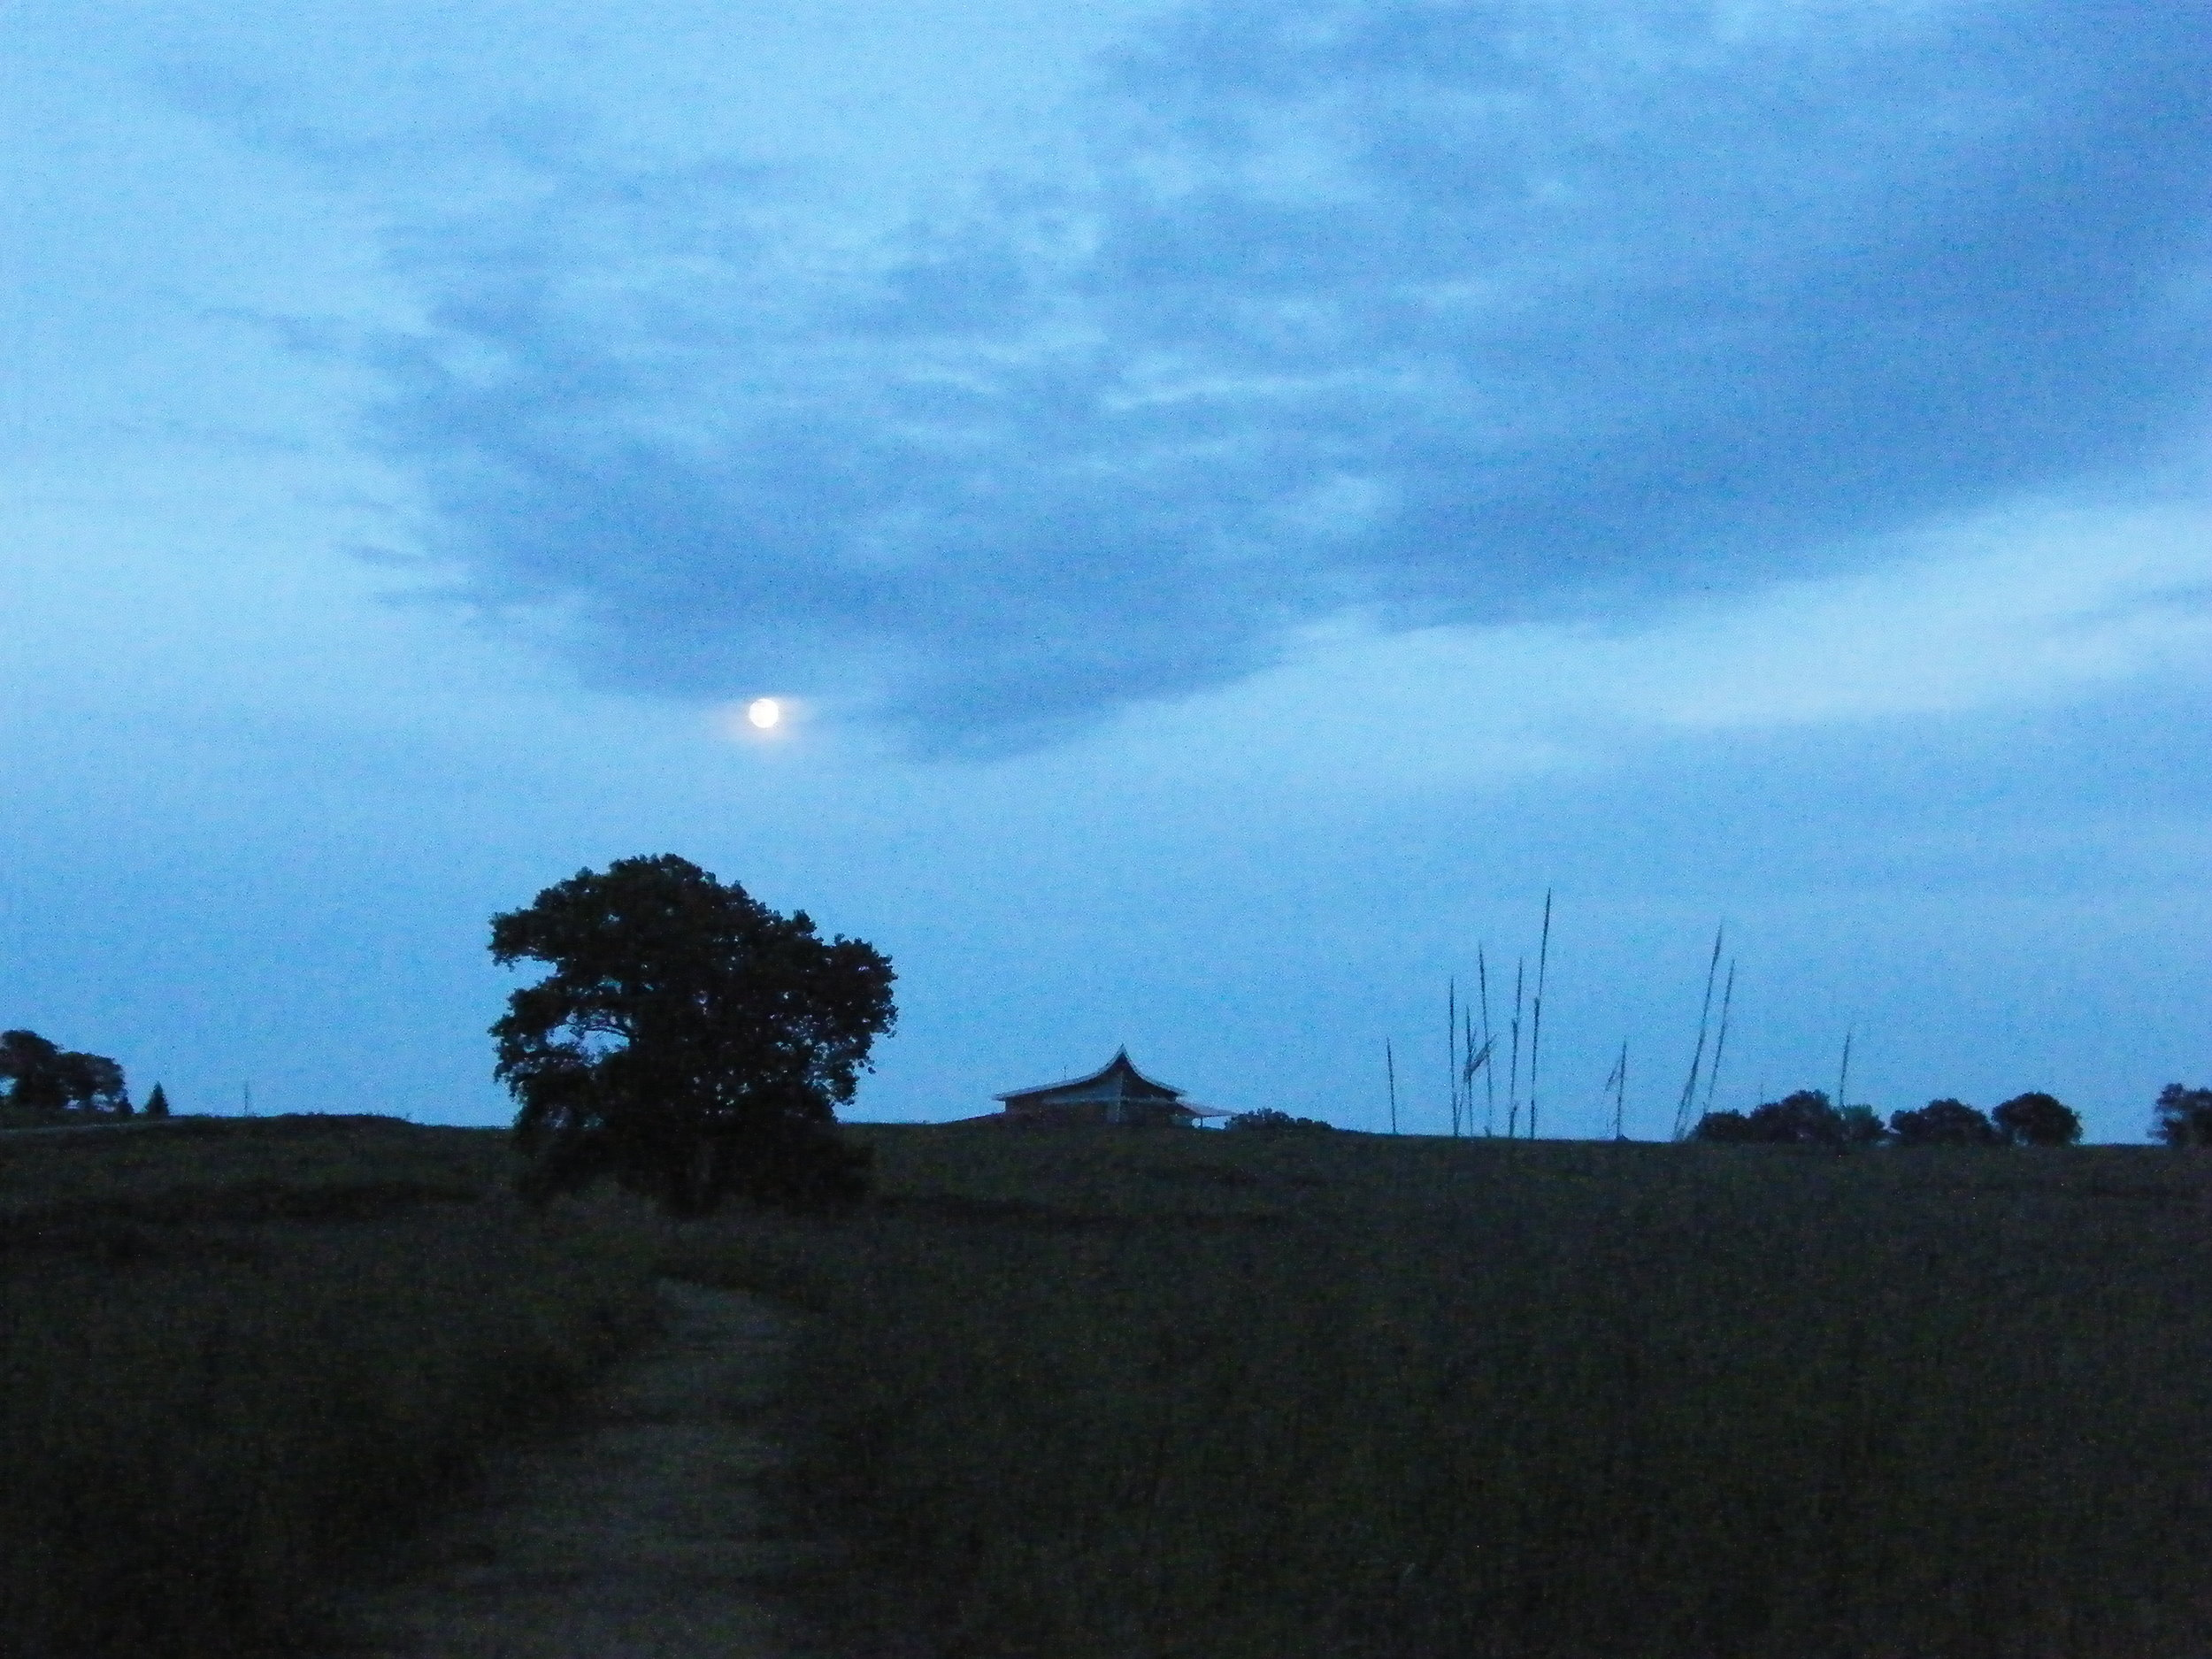 Full Moon over Homestead National Monument Visitor's Center